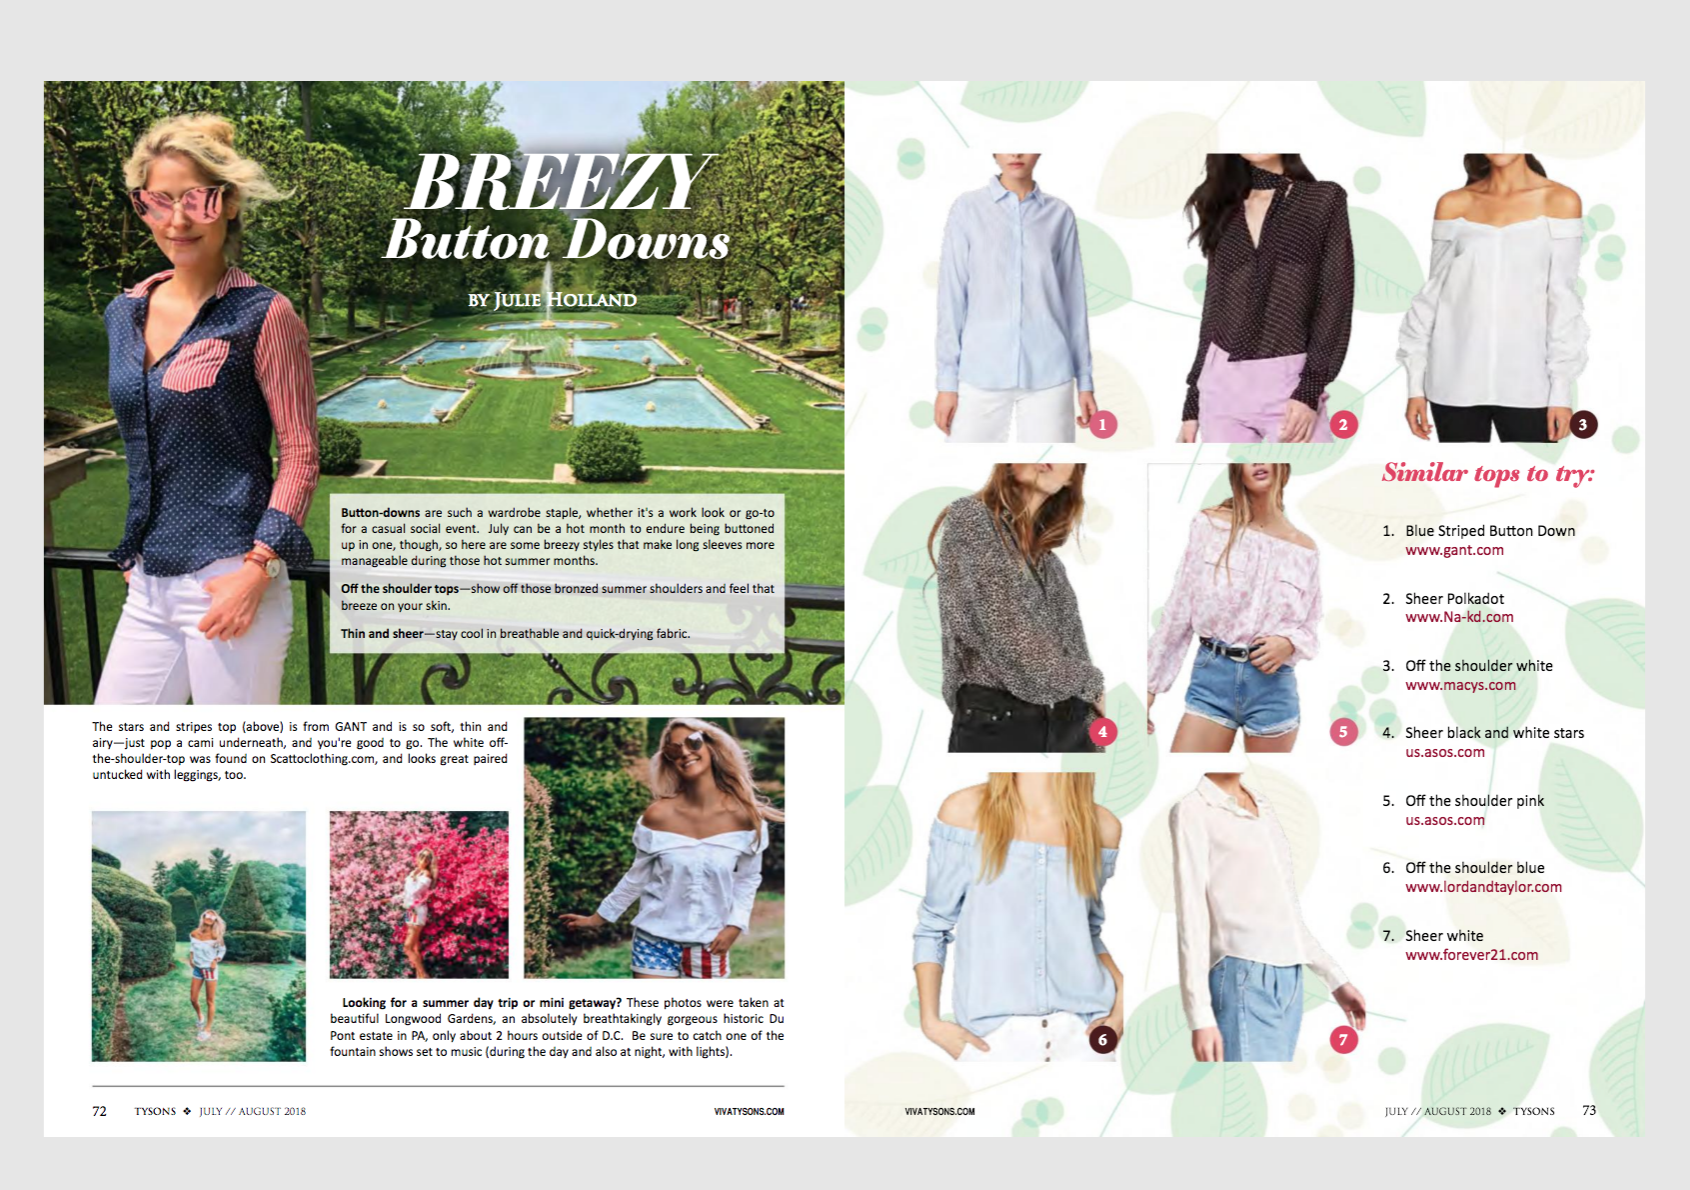 Viva Tysons Magazine July August 2018, Breezy Button Downs by Julie Holland